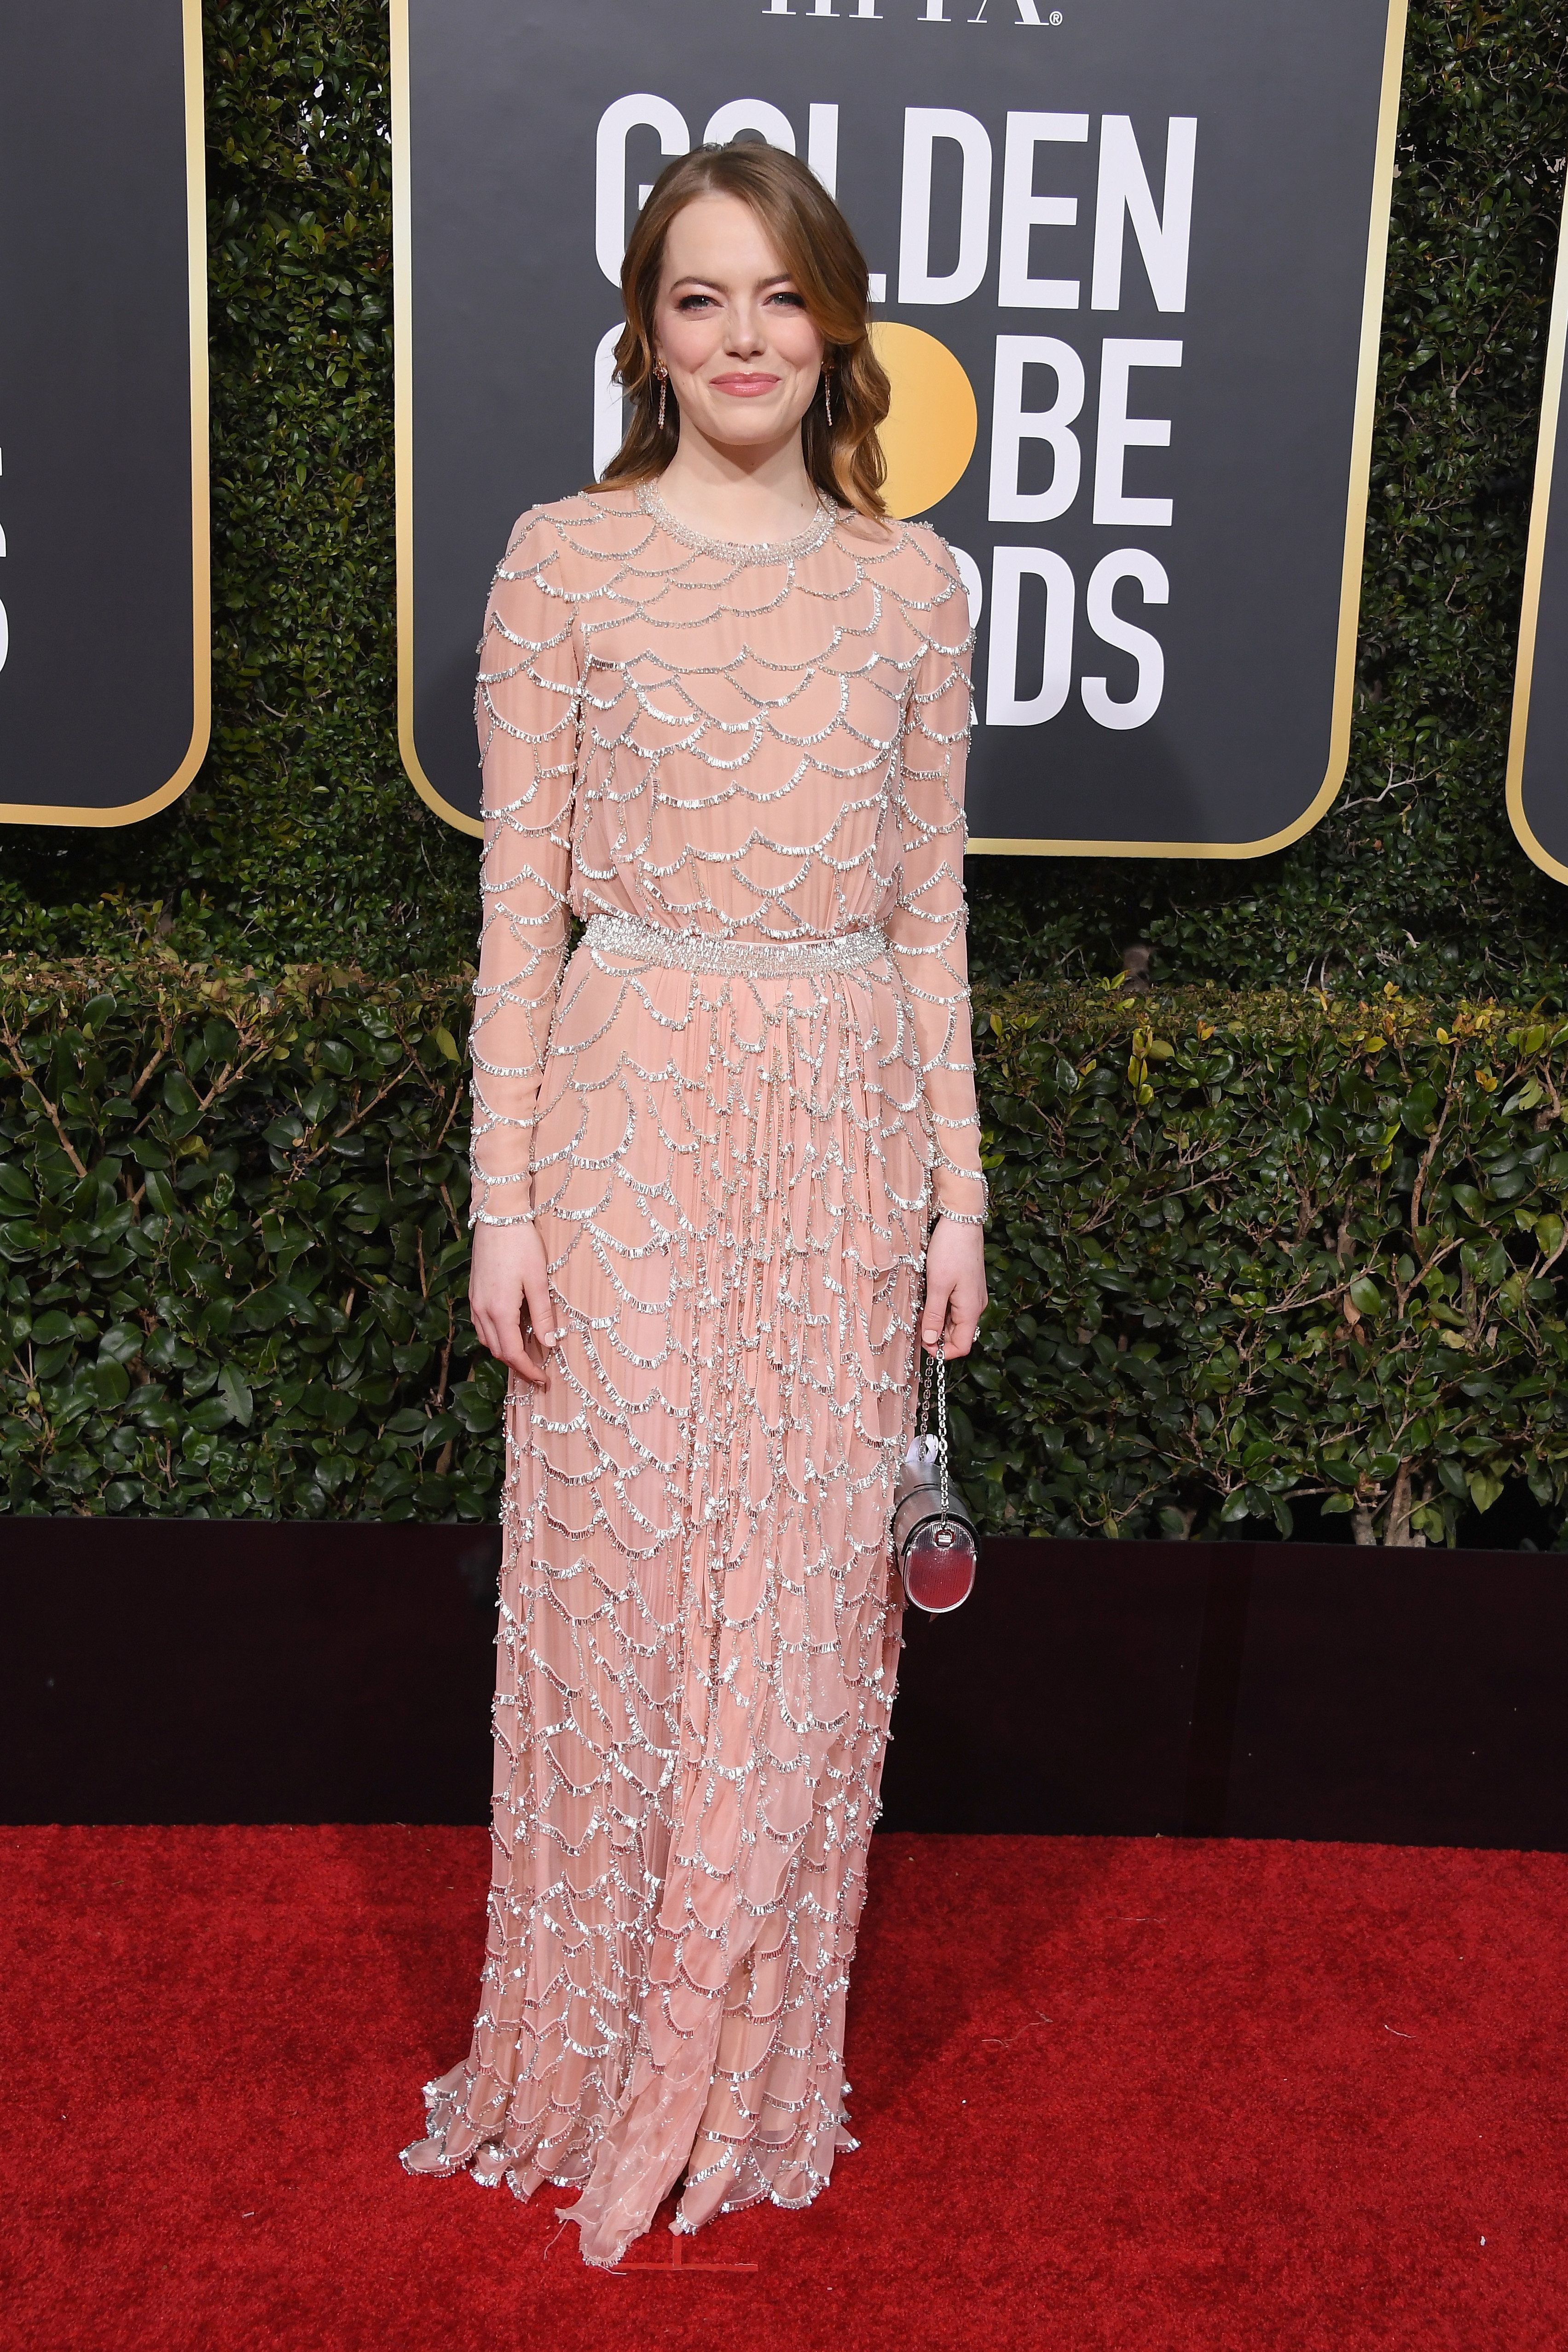 BEVERLY HILLS, CA - JANUARY 06:  Emma Stone attends the 76th Annual Golden Globe Awards at The Beverly Hilton Hotel on January 6, 2019 in Beverly Hills, California.  (Photo by Steve Granitz/WireImage)